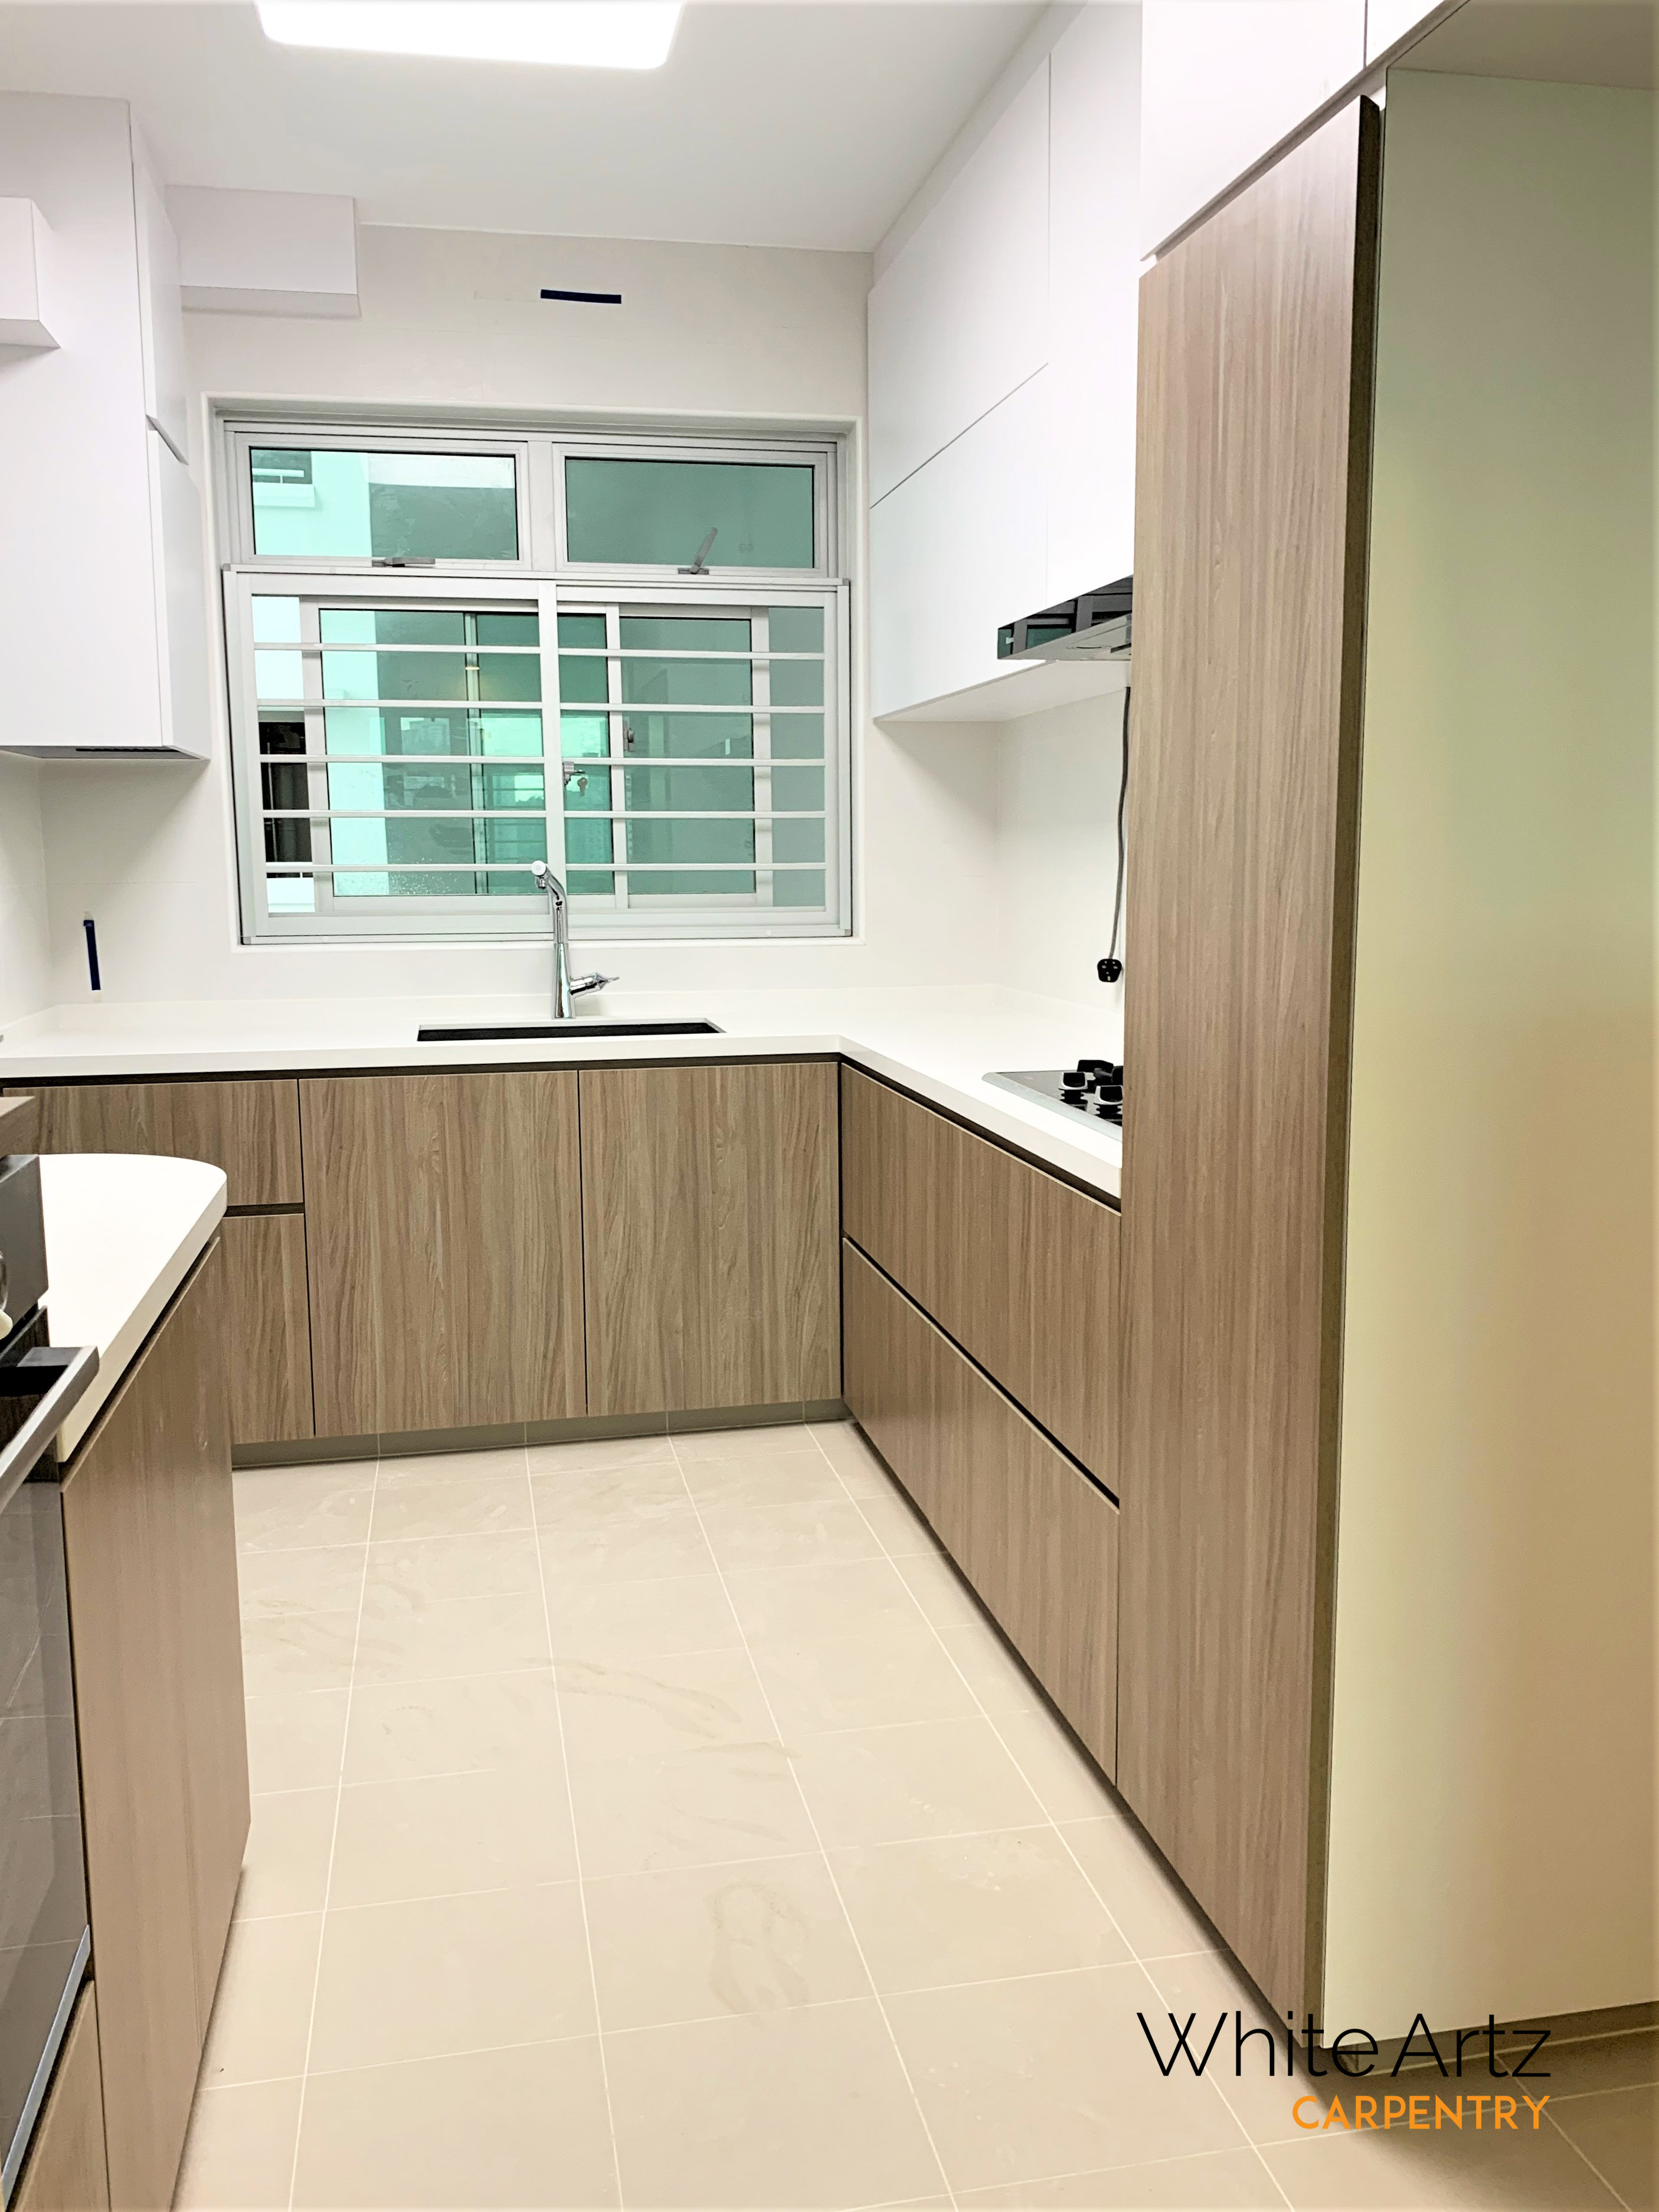 Direct carpentry Singapore - Get a free quote today - White Artz Carpentry